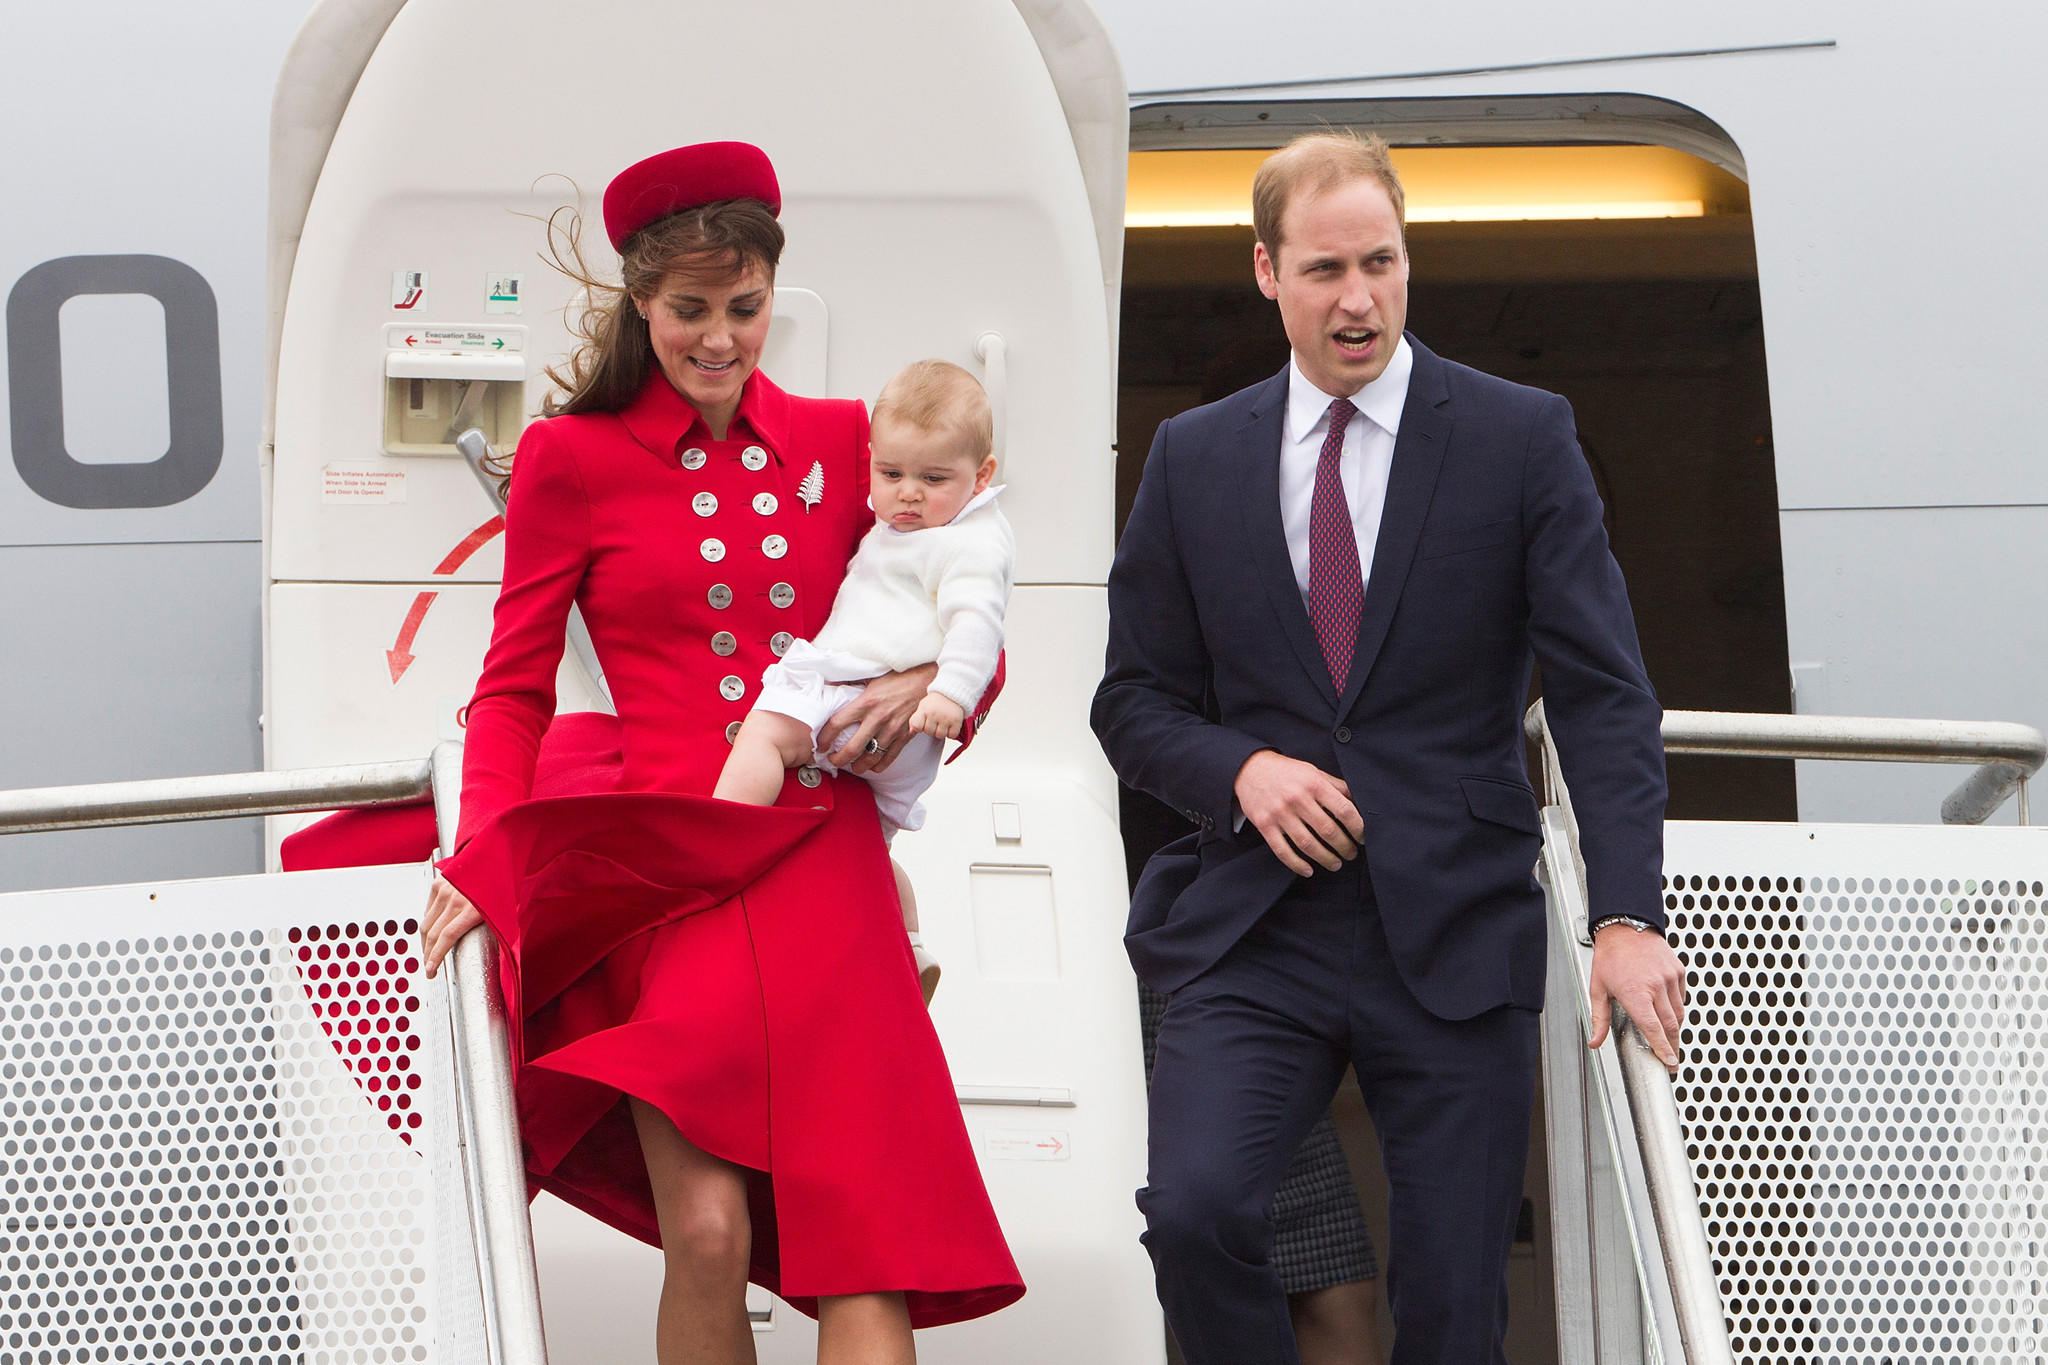 The duke and duchess of Cambridge with Prince George arrive at Wellington Military Terminal, Wellington, New Zealand.